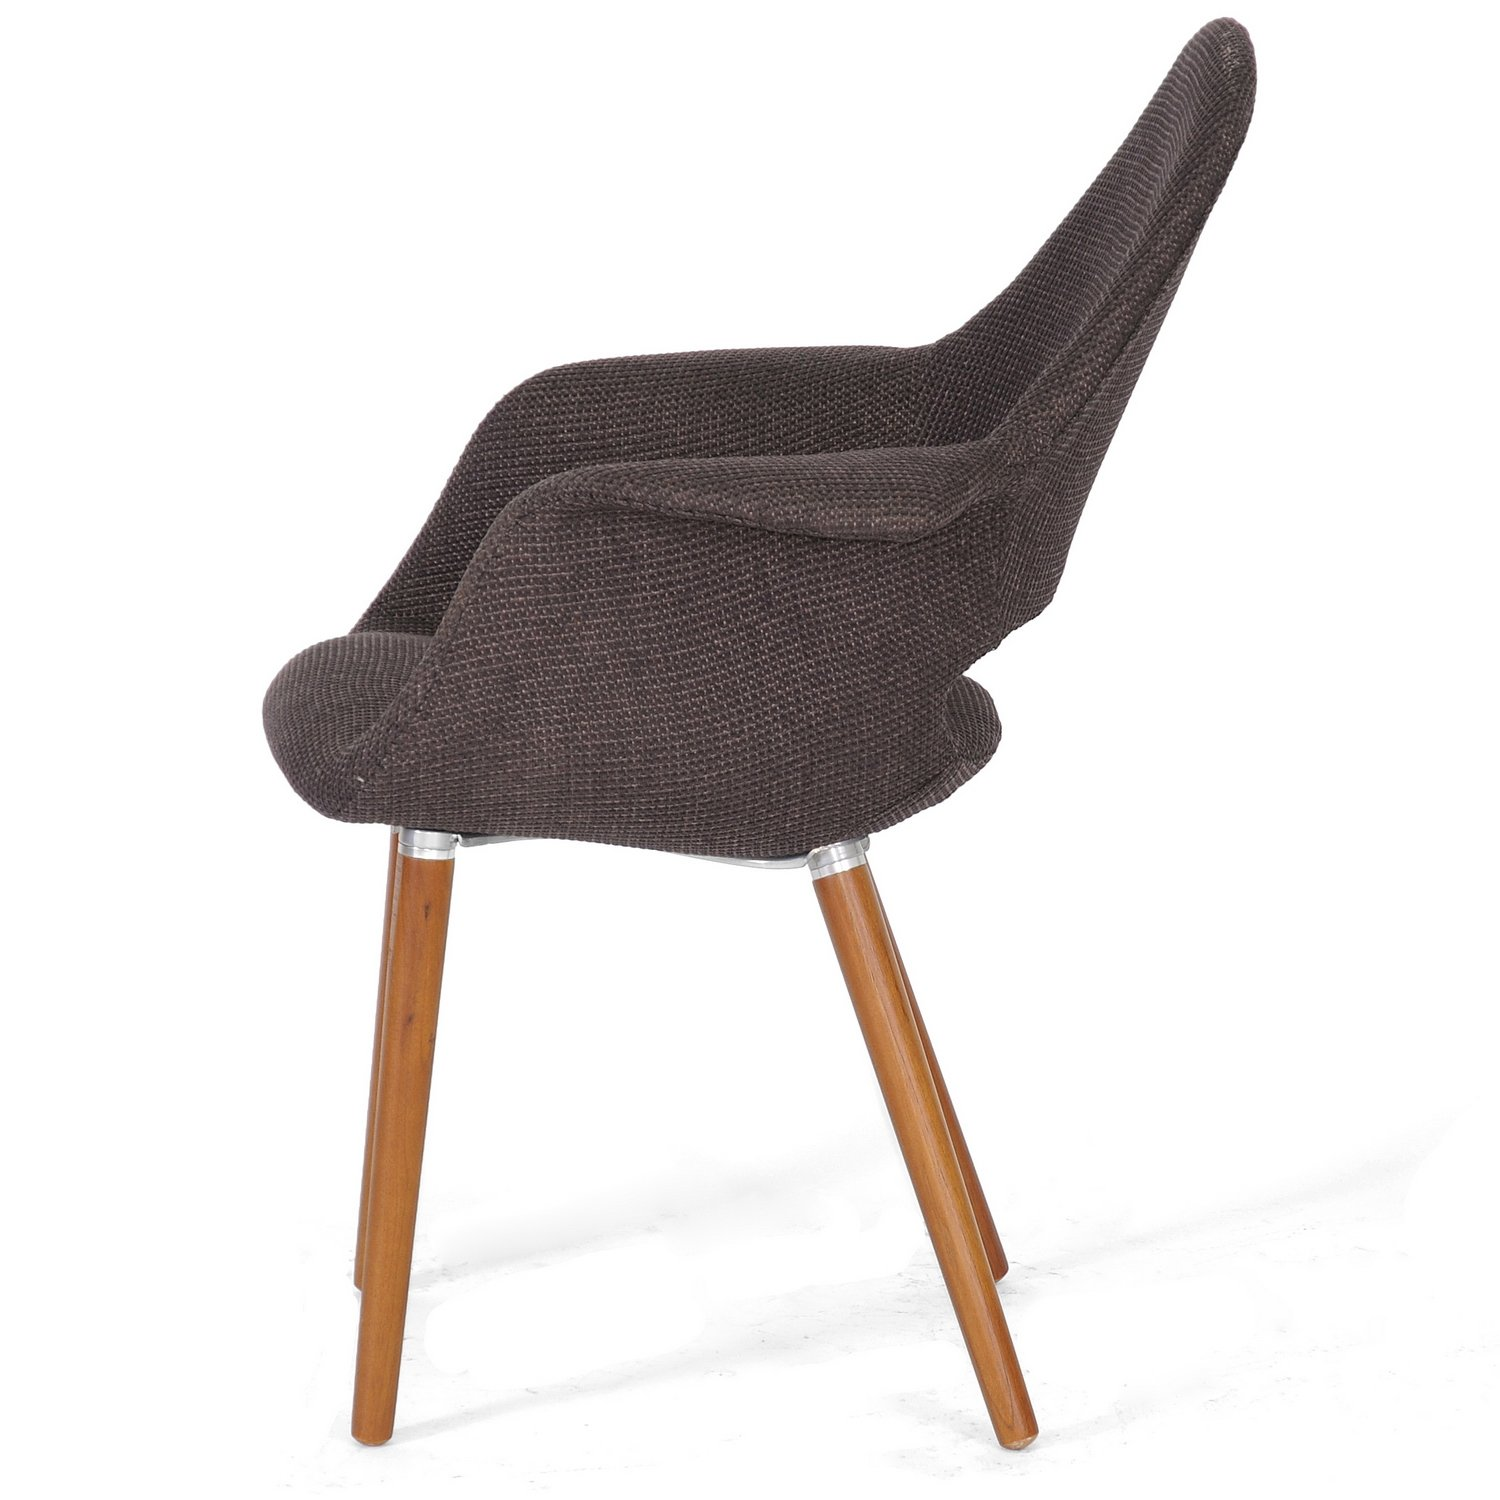 Baxton studio forza fabric mid century modern arm chair for Modern arm chair